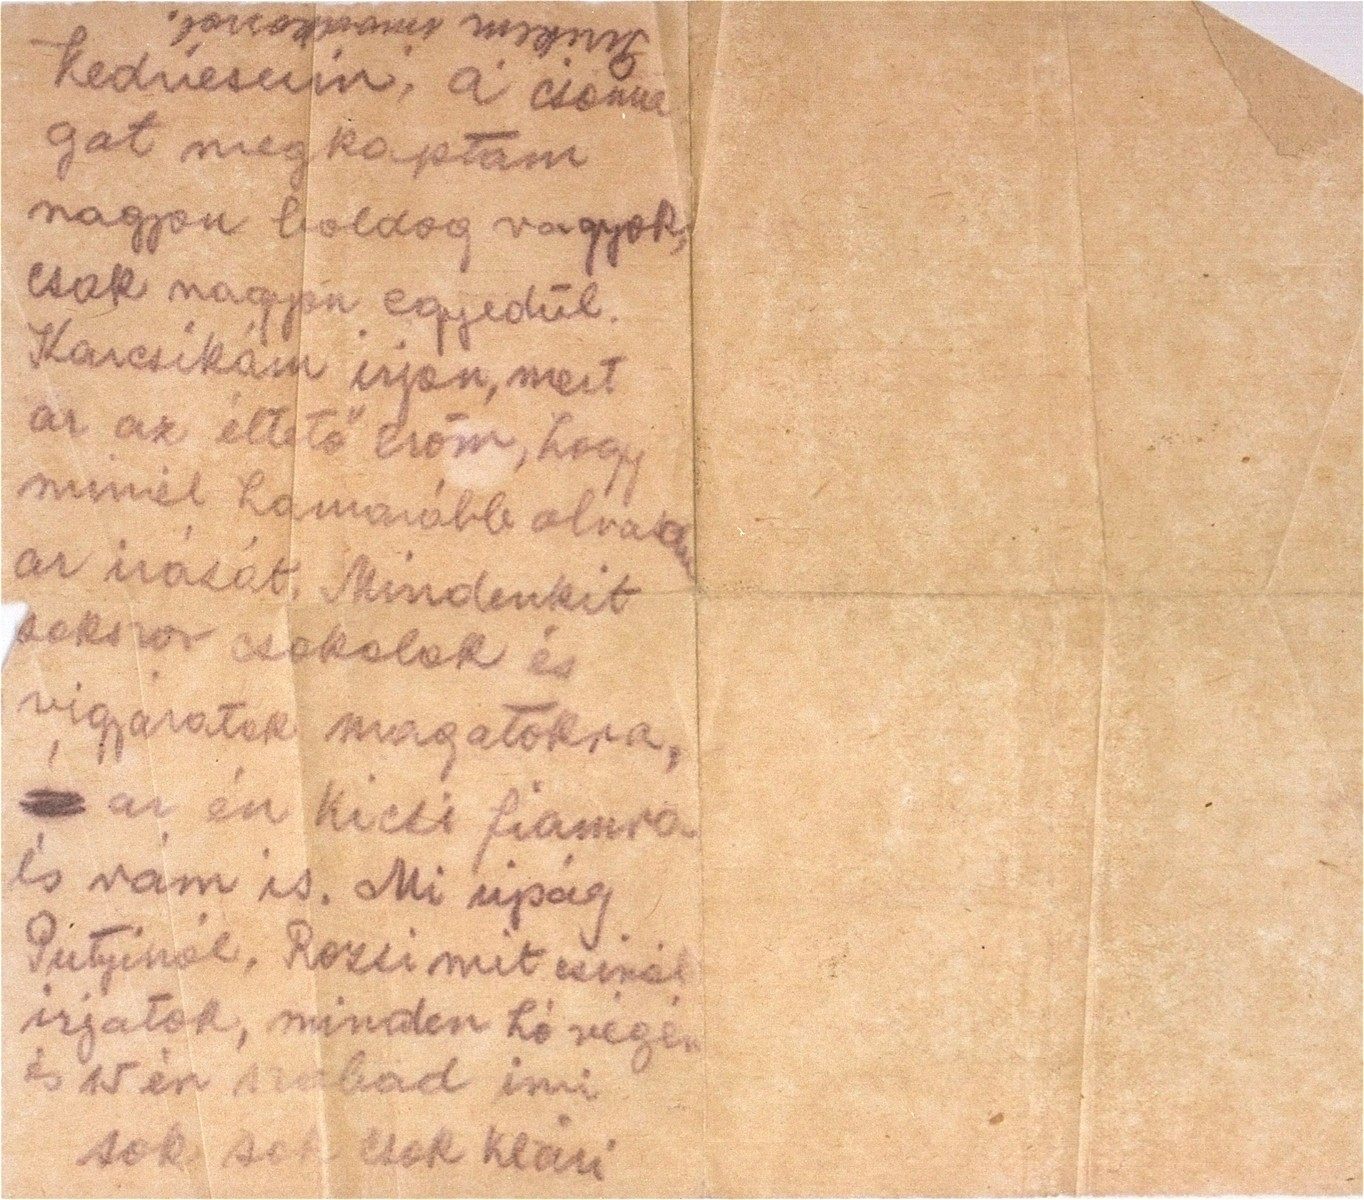 "A letter written by Klari Perl Barber, a prisoner in the Kistarcsa transit camp, to her sister, Piroska, in Budapest.    In the letter Klari thanks her sister for sending her a package and for taking care of her son, Karoly.  She asks that Karoly write to her ""because that will give me the strength to live.""  Klari also informs her sister that she is allowed to receive two letters a month.  [Translation from the Hungarian]: ""My dear everyone, I received the package.  I am very happy, but I am very lonely.  My little Karcsi [Karoly] must write because that will give me the strength to live, if I can read his writing as soon as possible.  Kisses to all, and take good care of yourselves, of my little son, and of me too.  What's the news about Putyi [nickname]?  What's Rozsi doing.  Write because it's permitted to write at the end of the month, and on the 15th.  Many, many kisses,  Klari.  P.S. My little Piri [Piroska], please pray."""